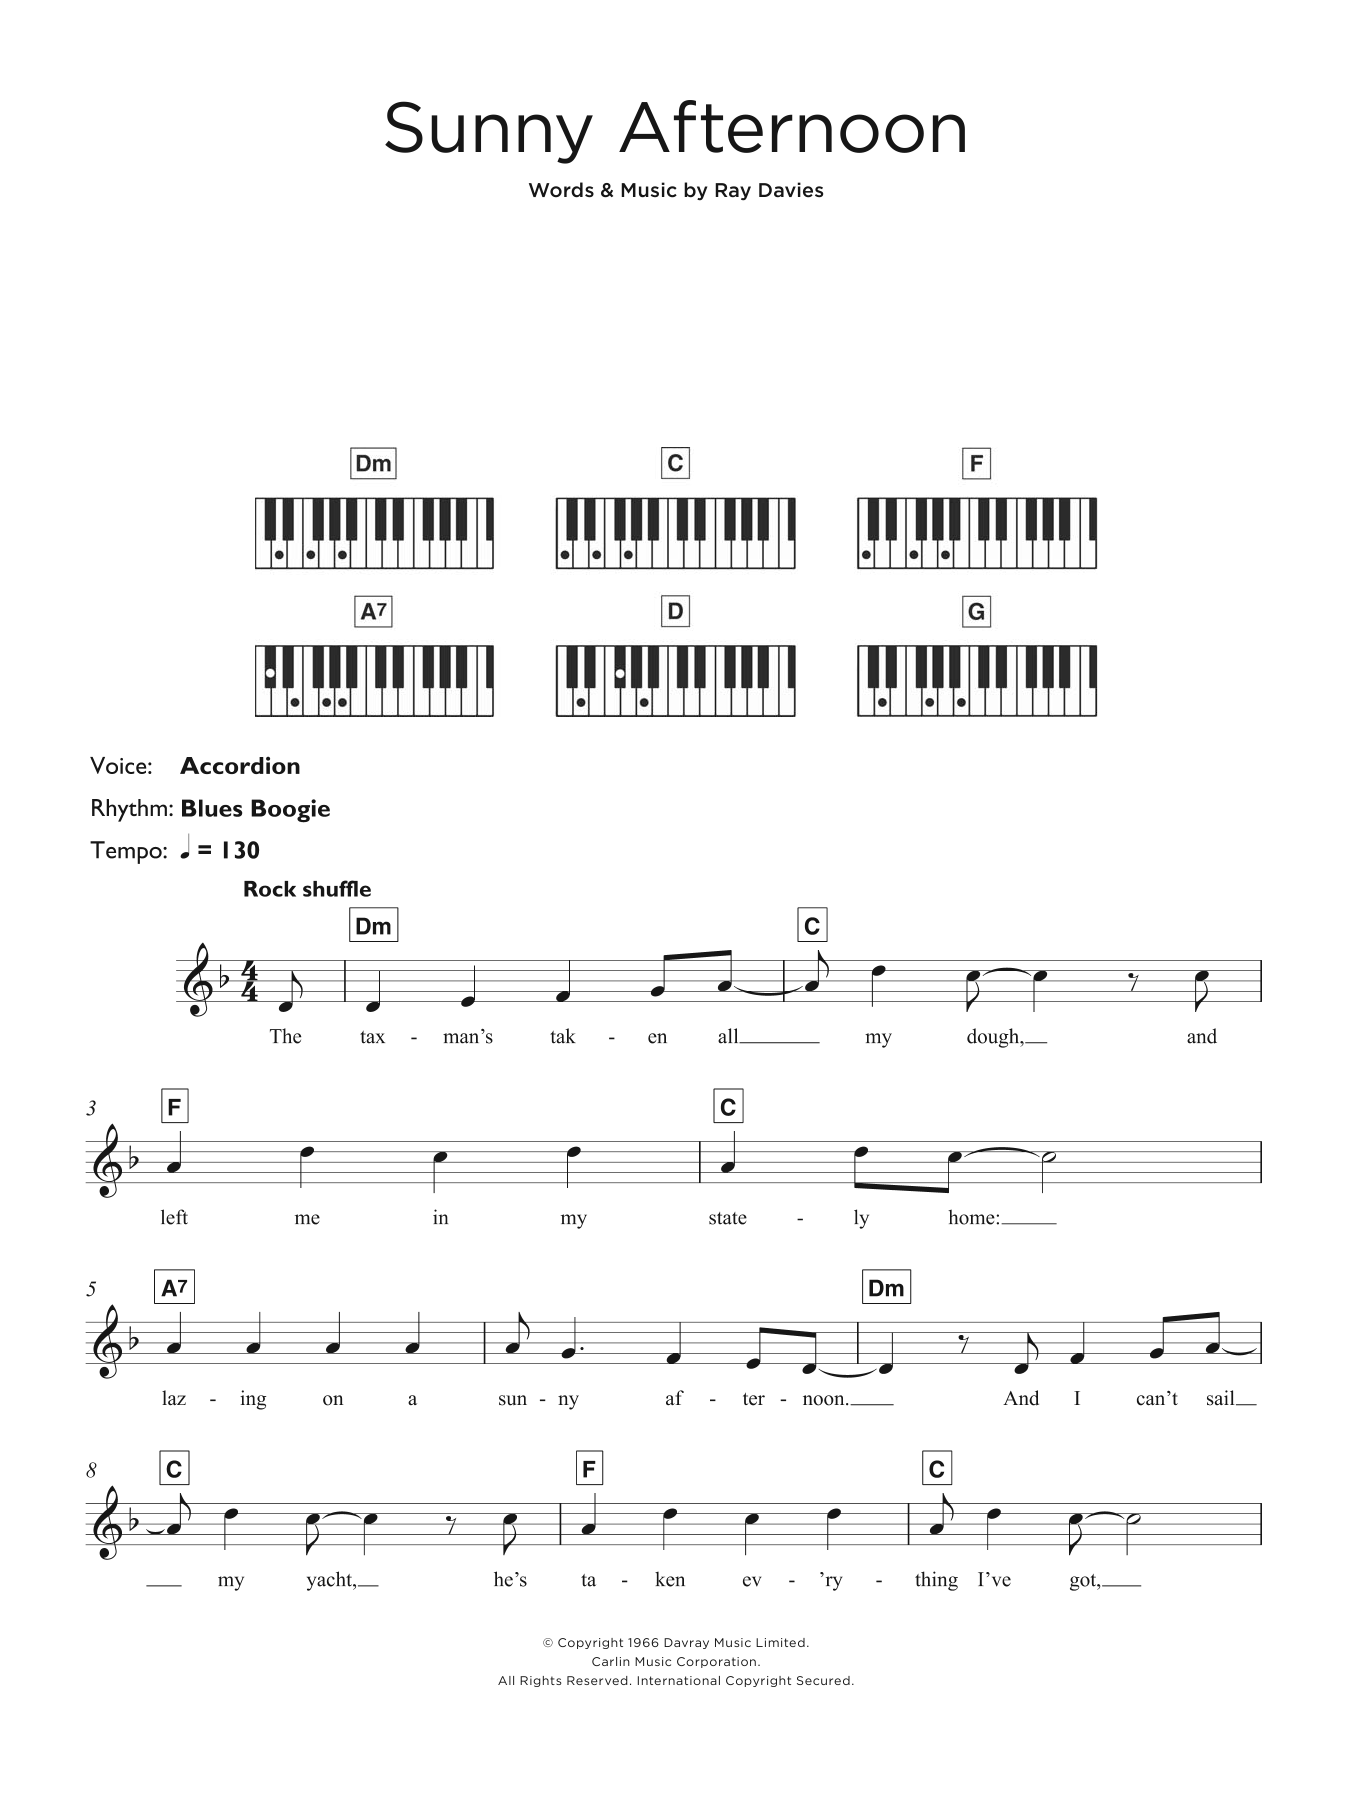 Sunny Afternoon Sheet Music